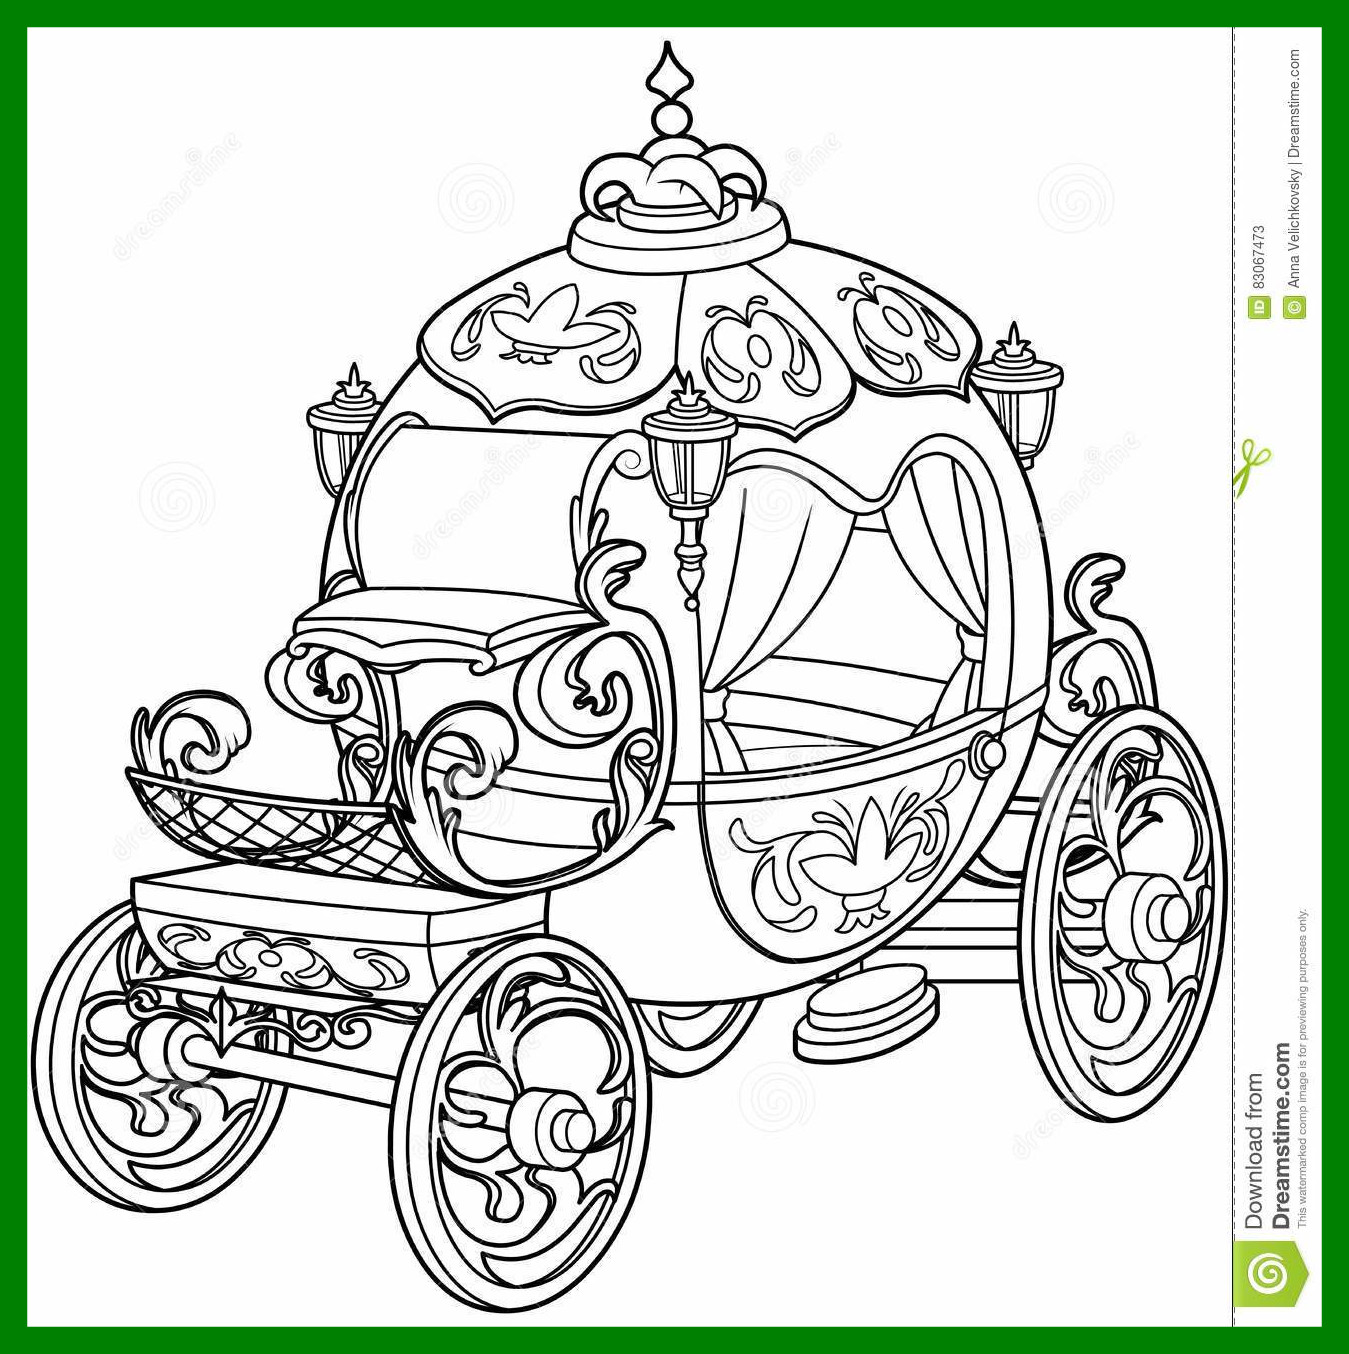 1349x1354 Horse And Carriage Coloring Page